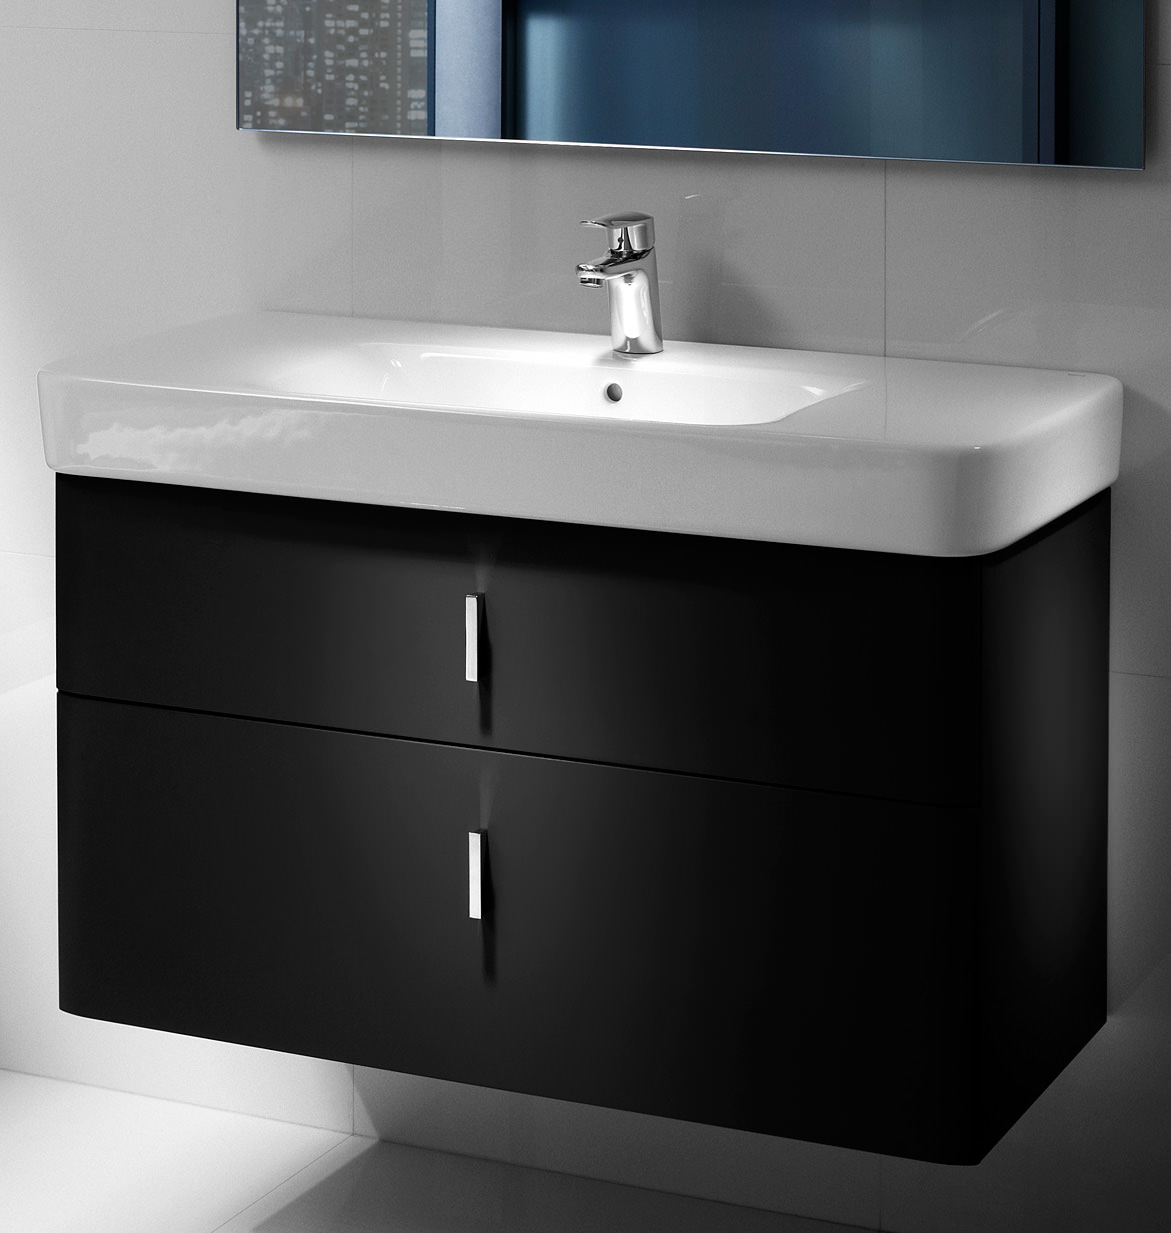 Roca Bathroom Accessories Roca Senso Square Matt Black 2 Drawer Base Unit For 100cm Basin